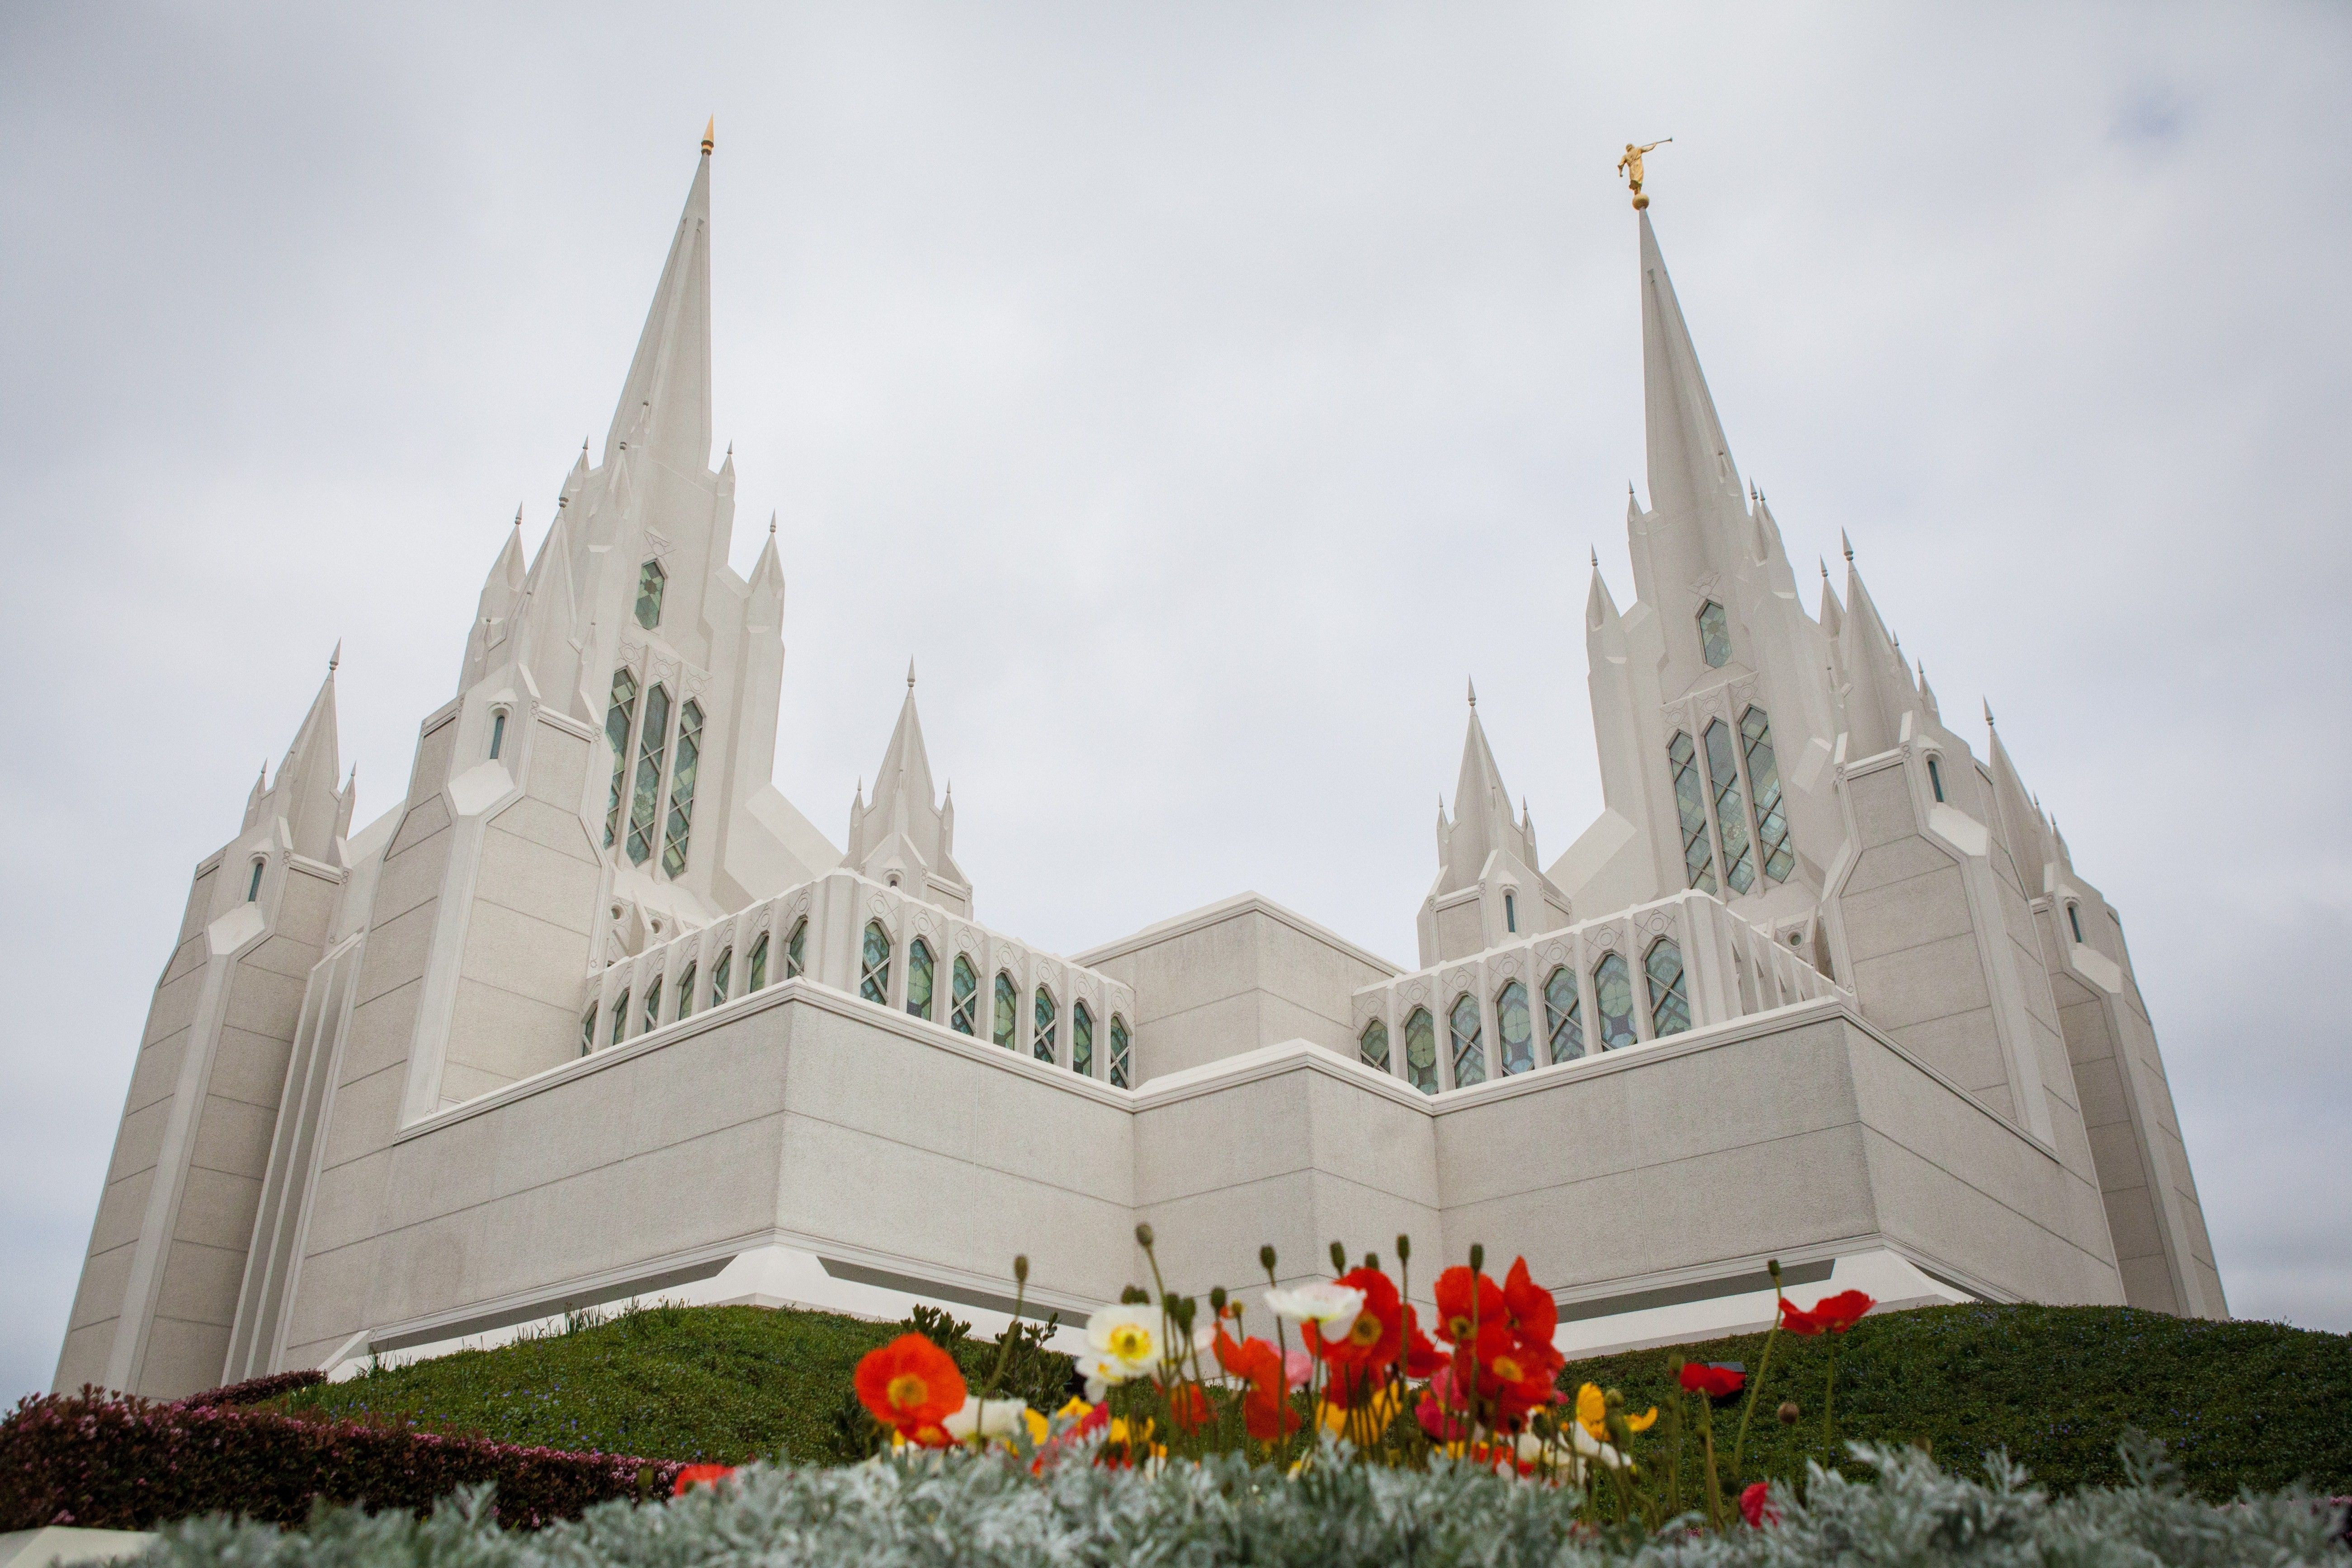 The San Diego California Temple, including scenery.